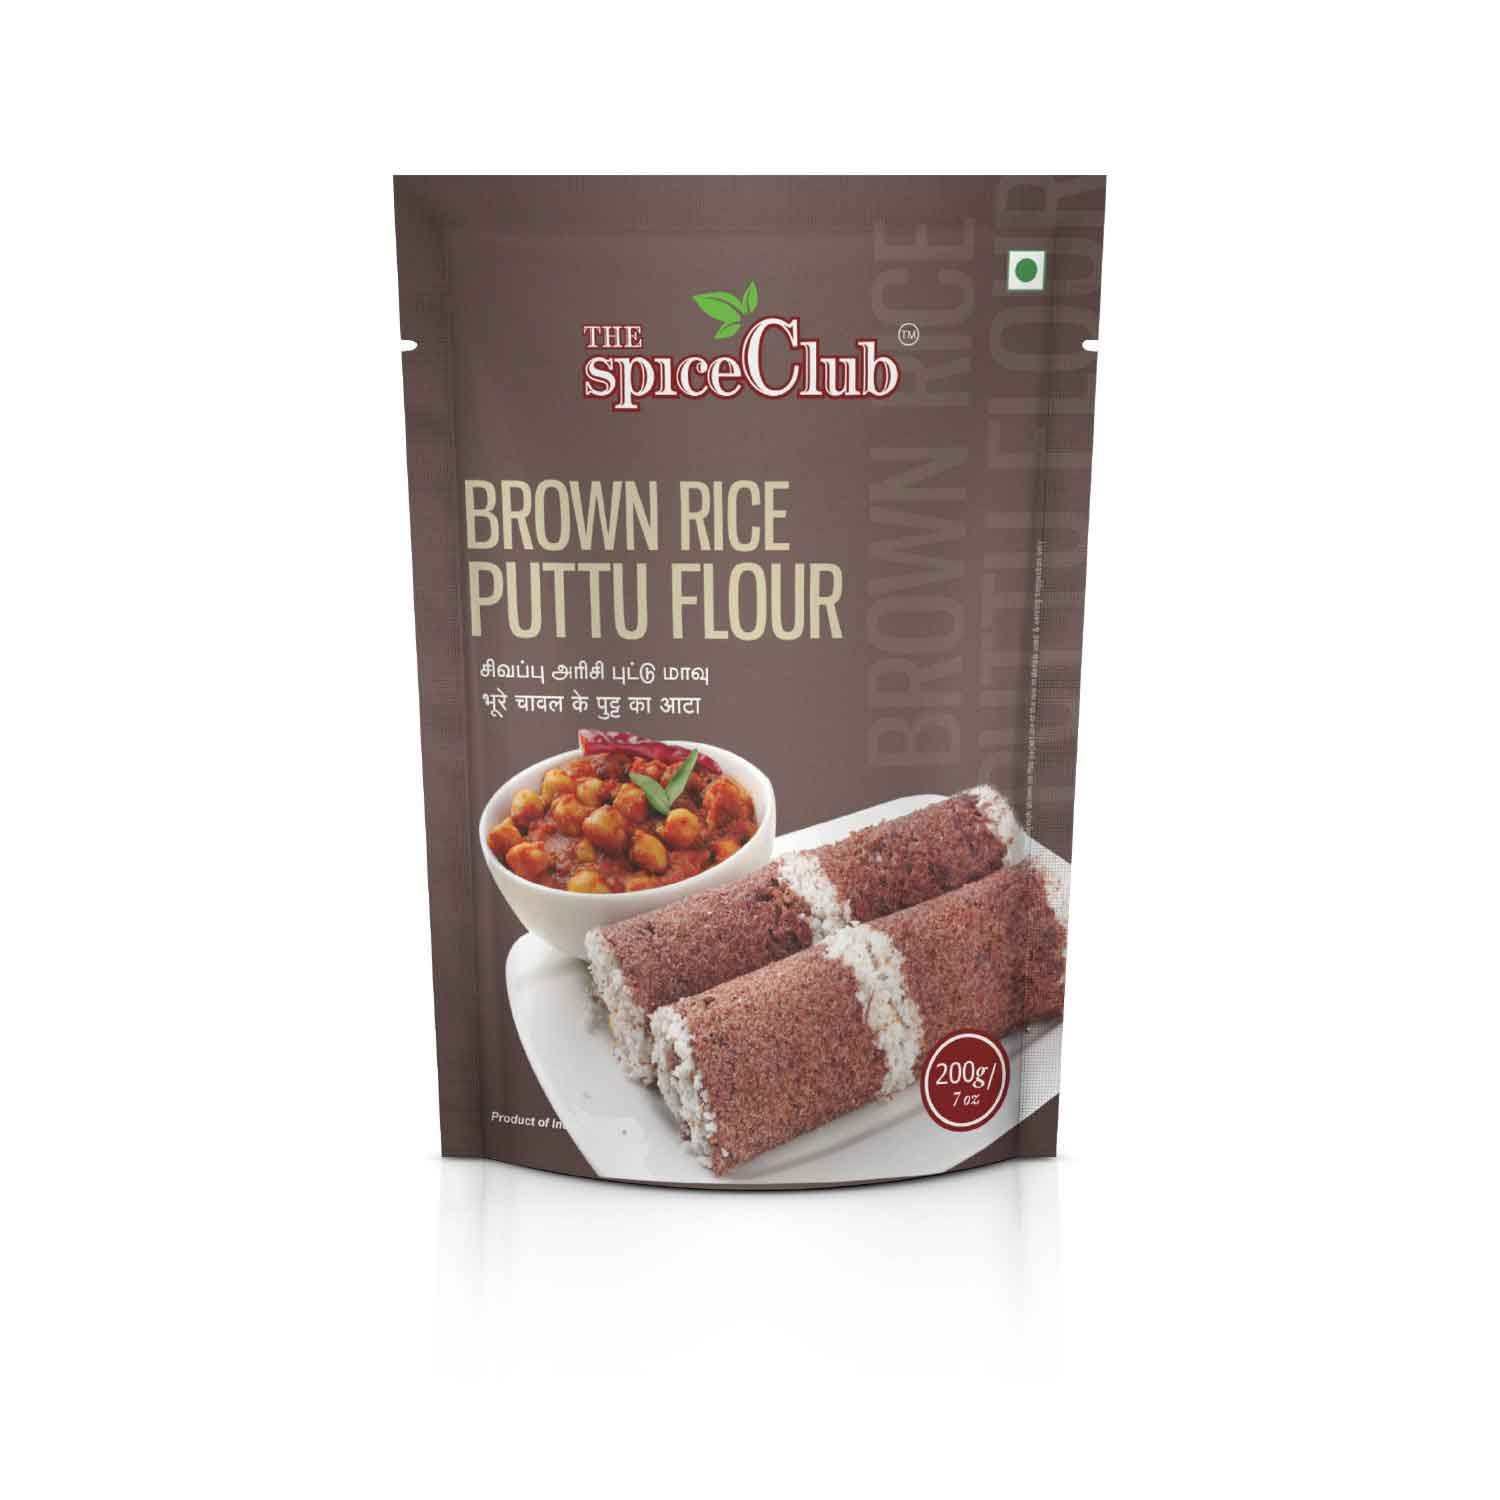 Brown Rice Puttu Flour